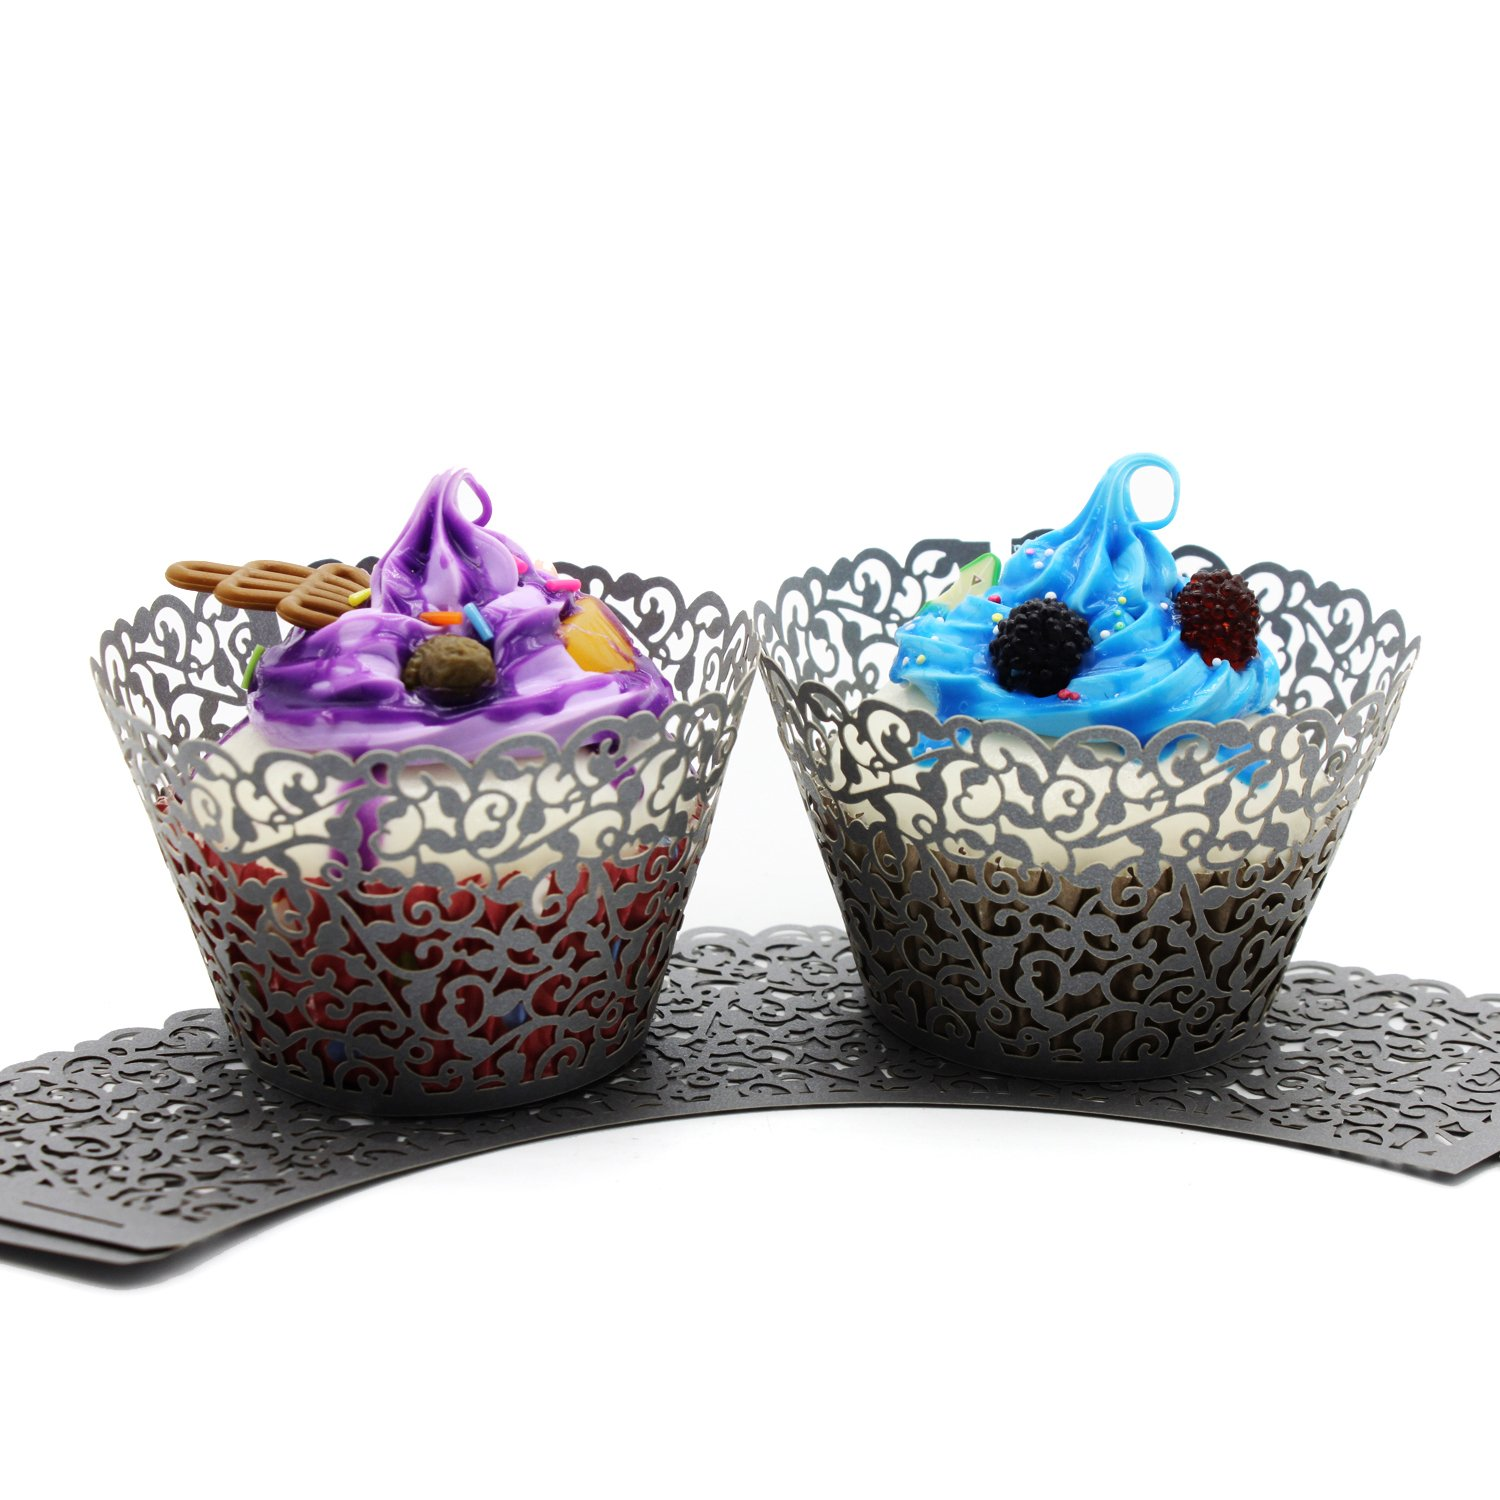 UNIQLED Filigree Artistic Bake Cake Paper Cups Little Vine Lace Laser Cut Liner Cupcake Wrappers Baking Cup Muffin Holder Case for Wedding Birthday Party Decoration (100, Silver)